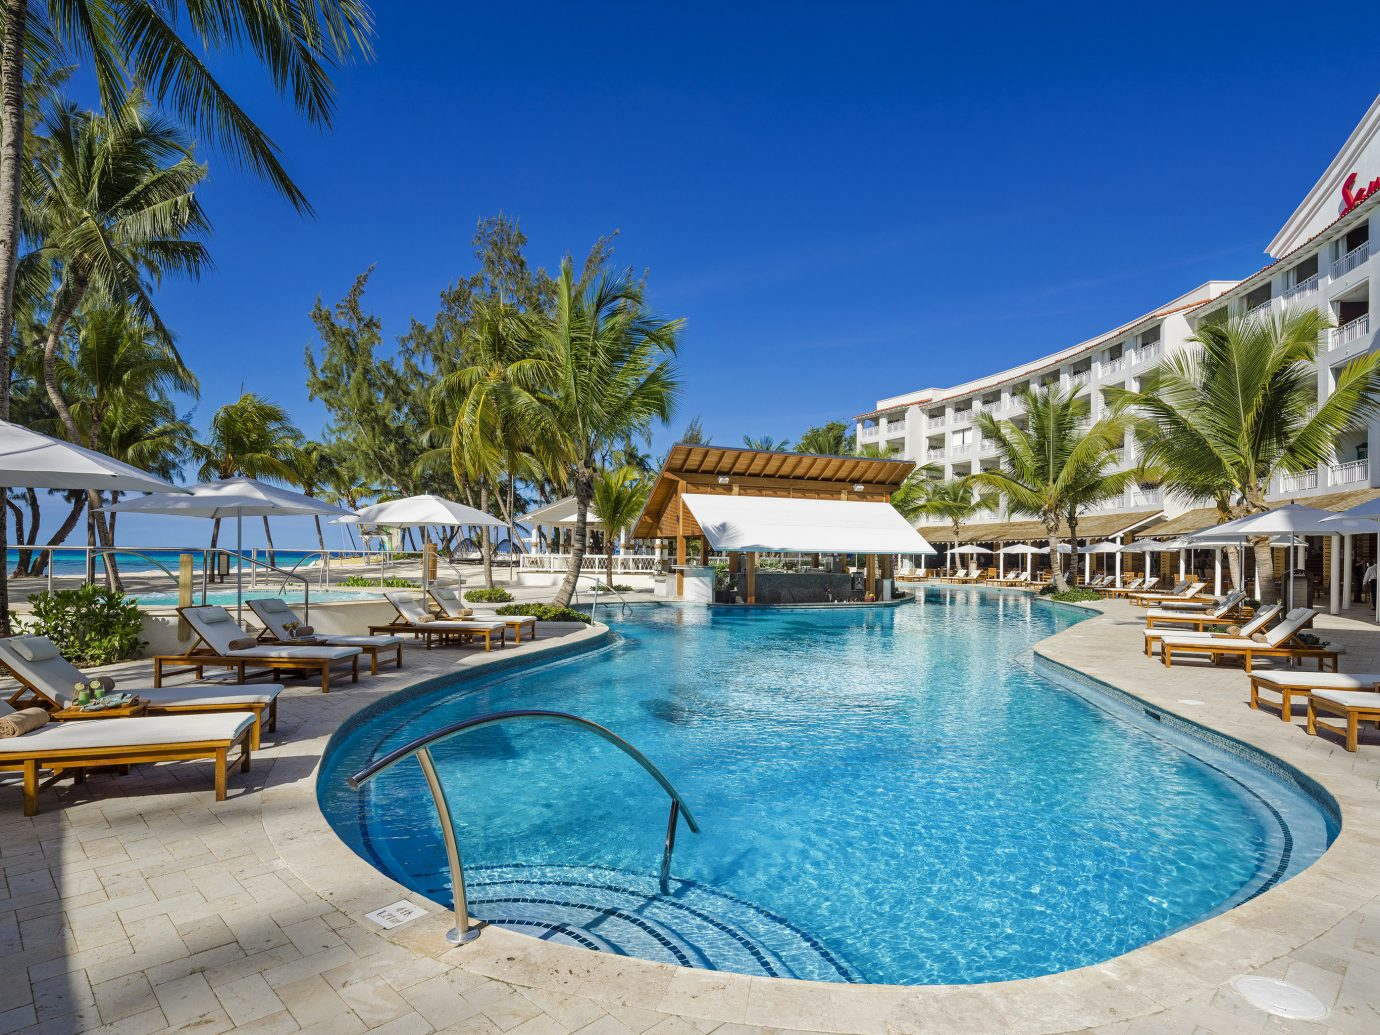 All-Inclusive Resorts Hotels outdoor tree sky Resort swimming pool leisure resort town building palm tree arecales vacation real estate hotel estate caribbean tropics tourism Villa bay Lagoon water blue palm lined